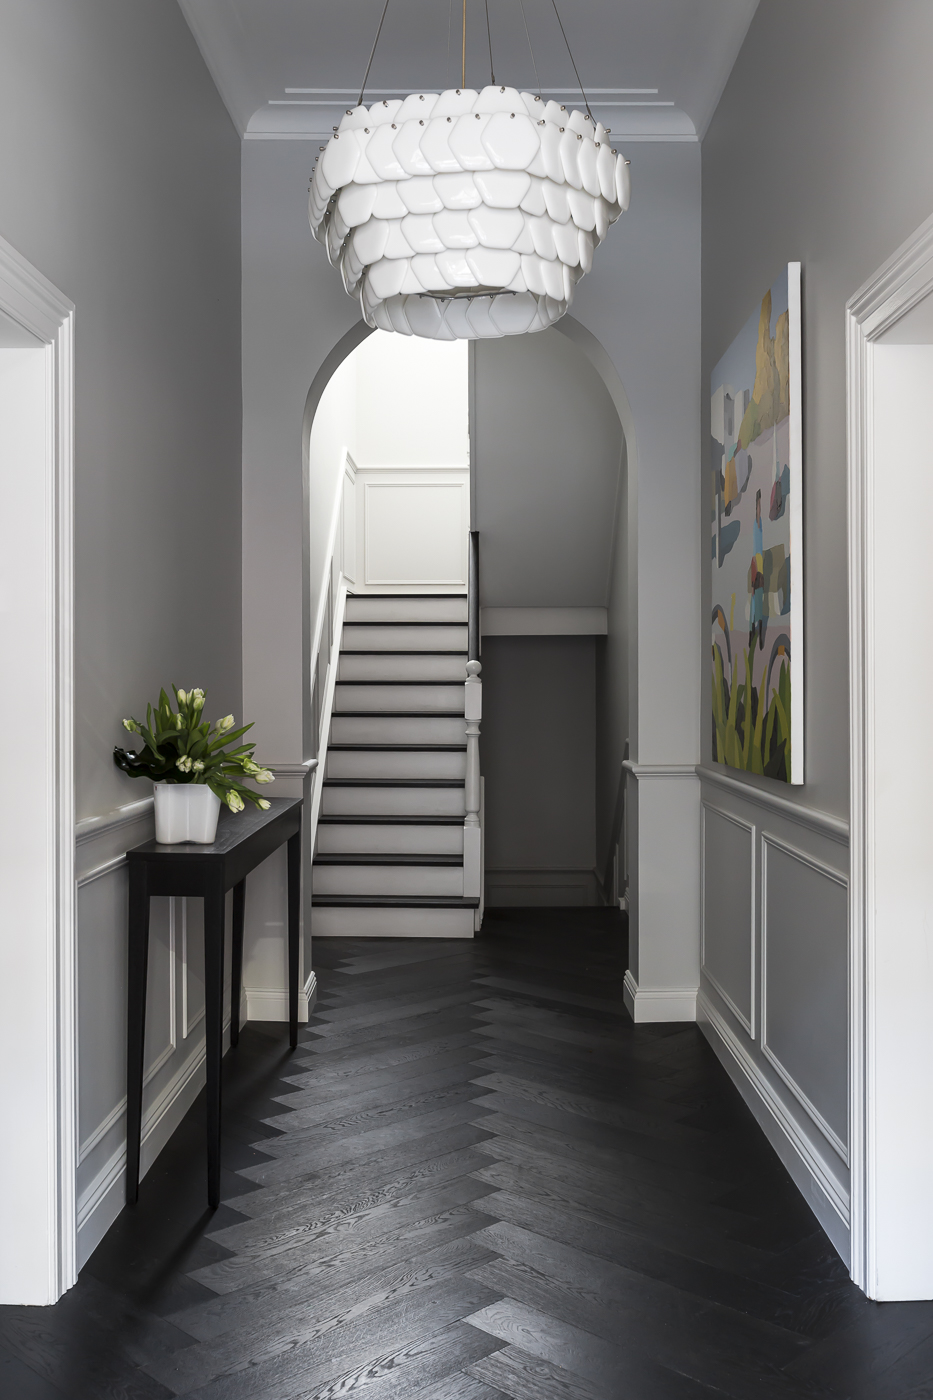 An elegant foyer proudly reveals strong features such as the new herringbone timber flooring, wall paneling and sculptural pendant light.